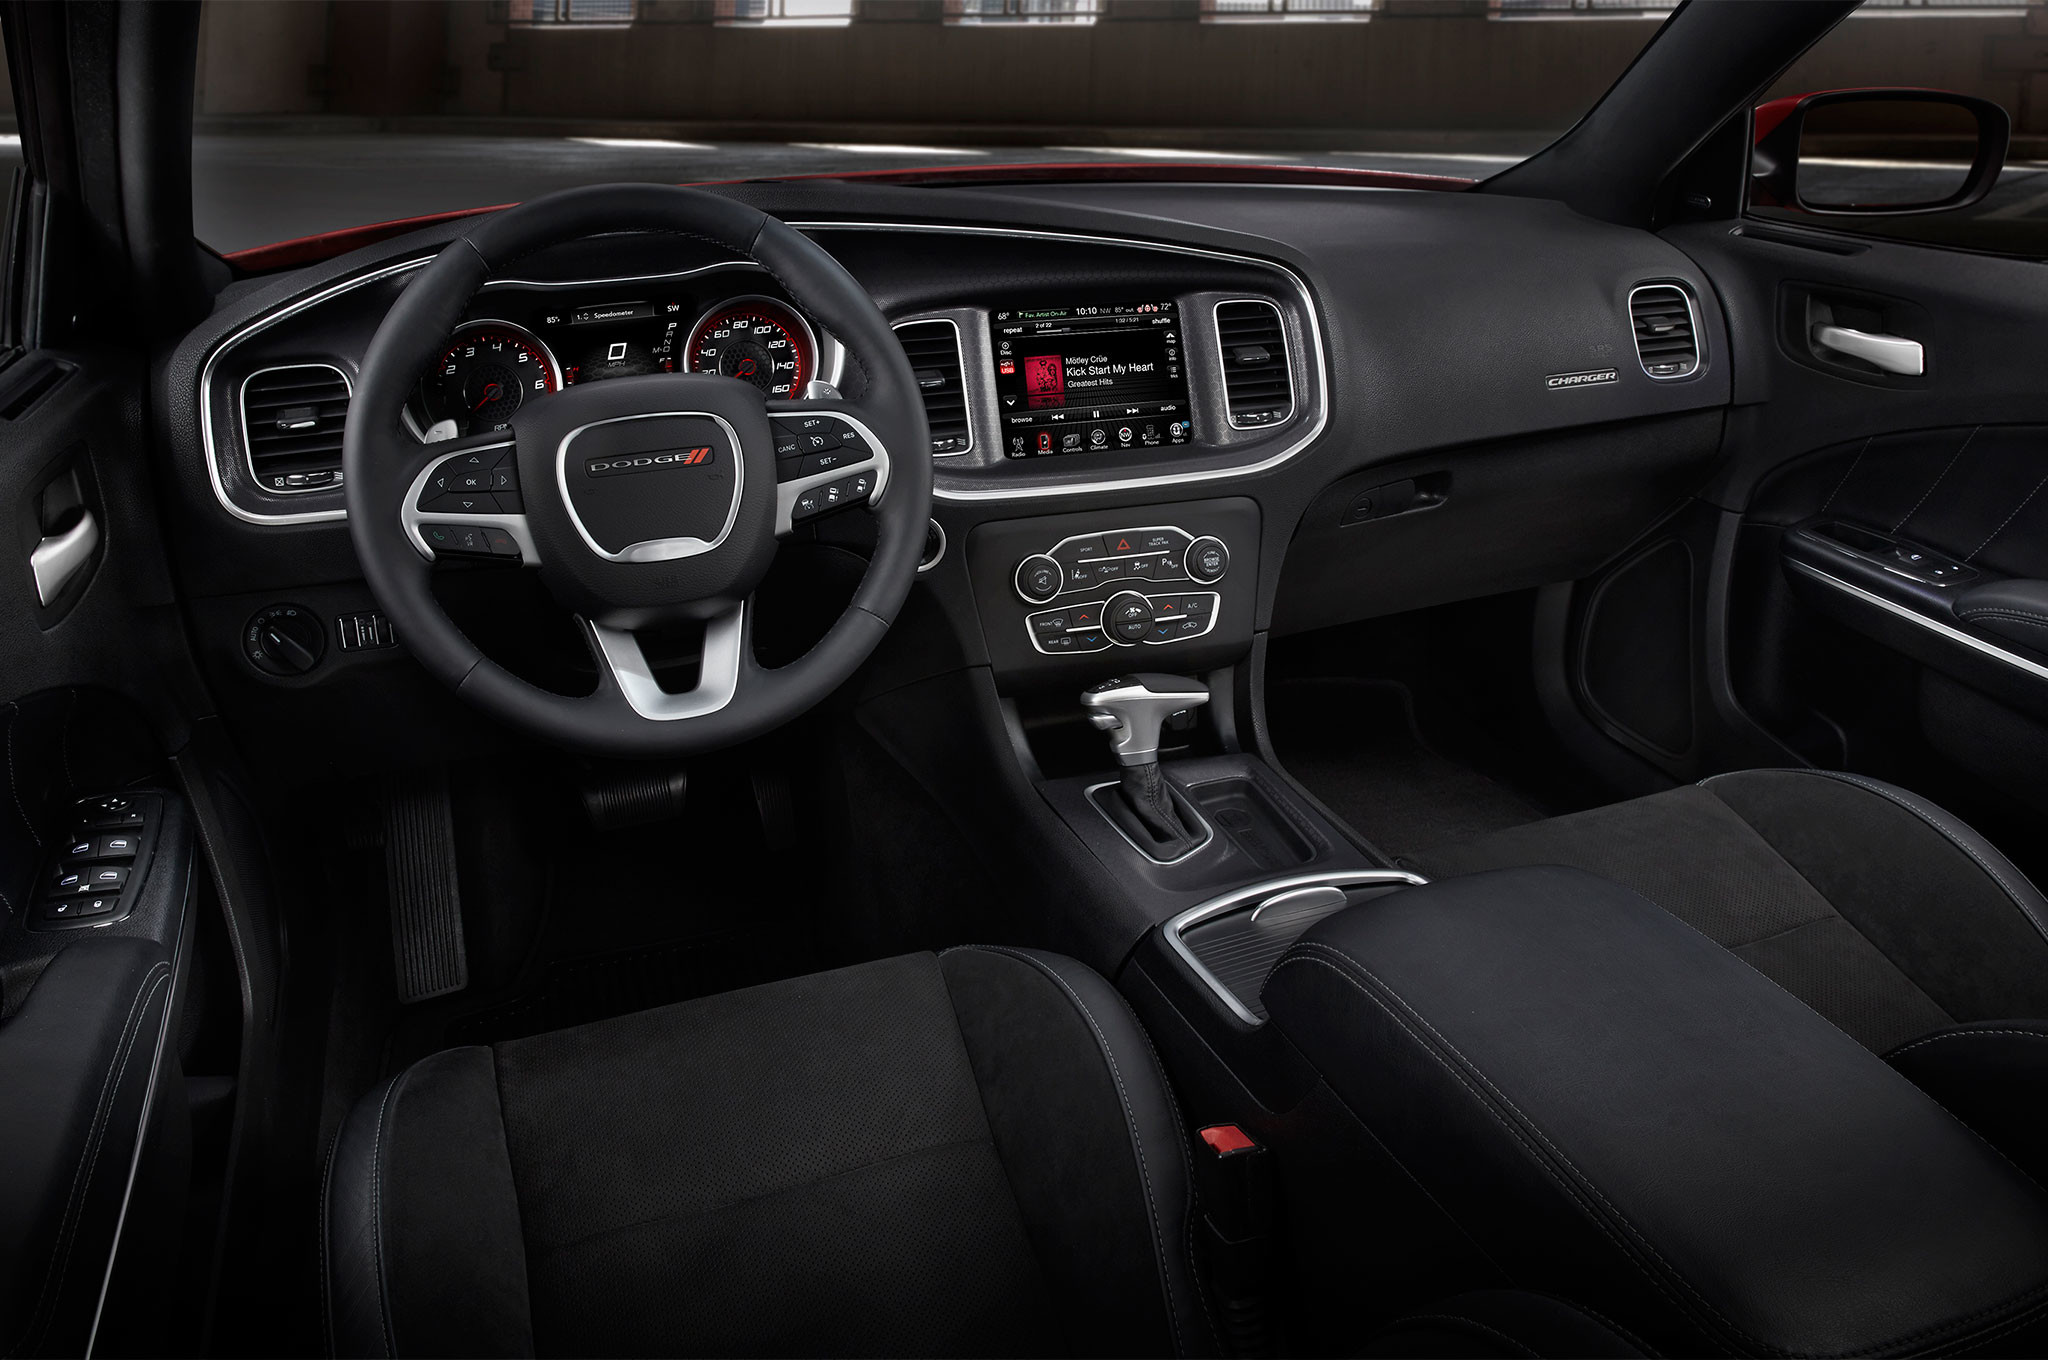 The 2017 Dodge Charger Hellcat will be powered by the Supercharged HEMI SRT  engine. The new Dodge Charger 2017 interior will stay almost the same